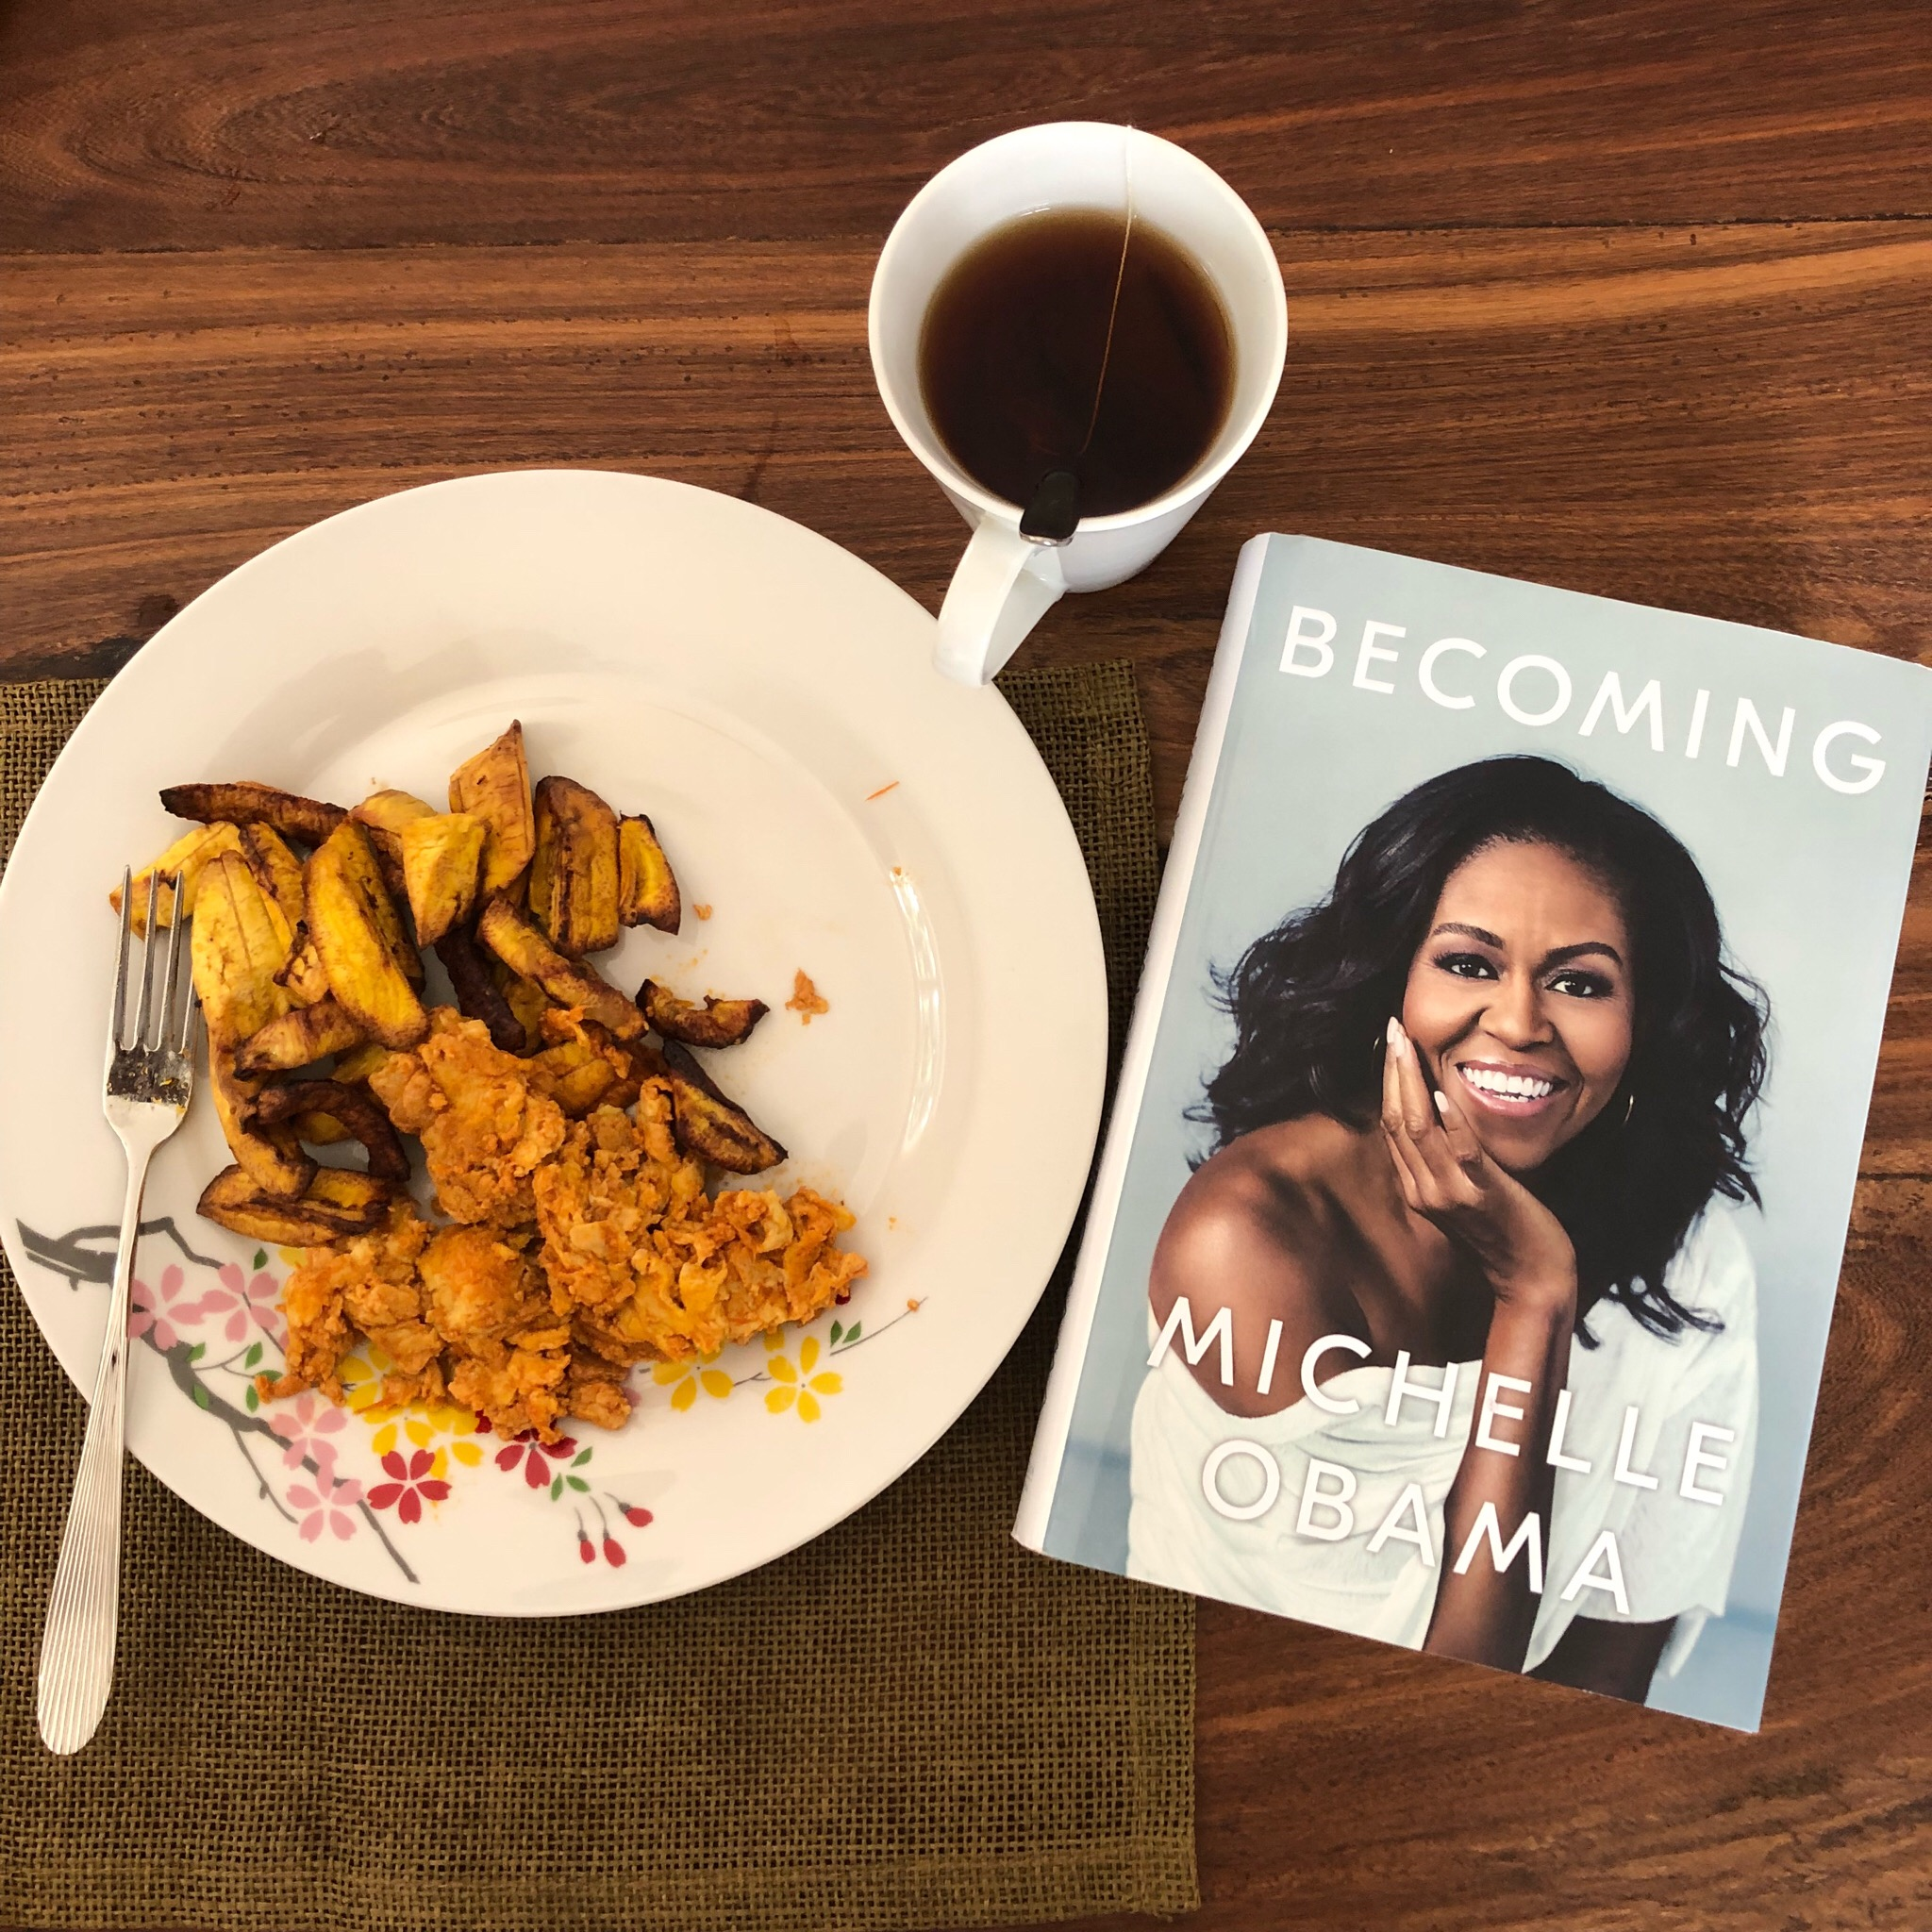 michelle obama becoming lessons review quotes.jpg